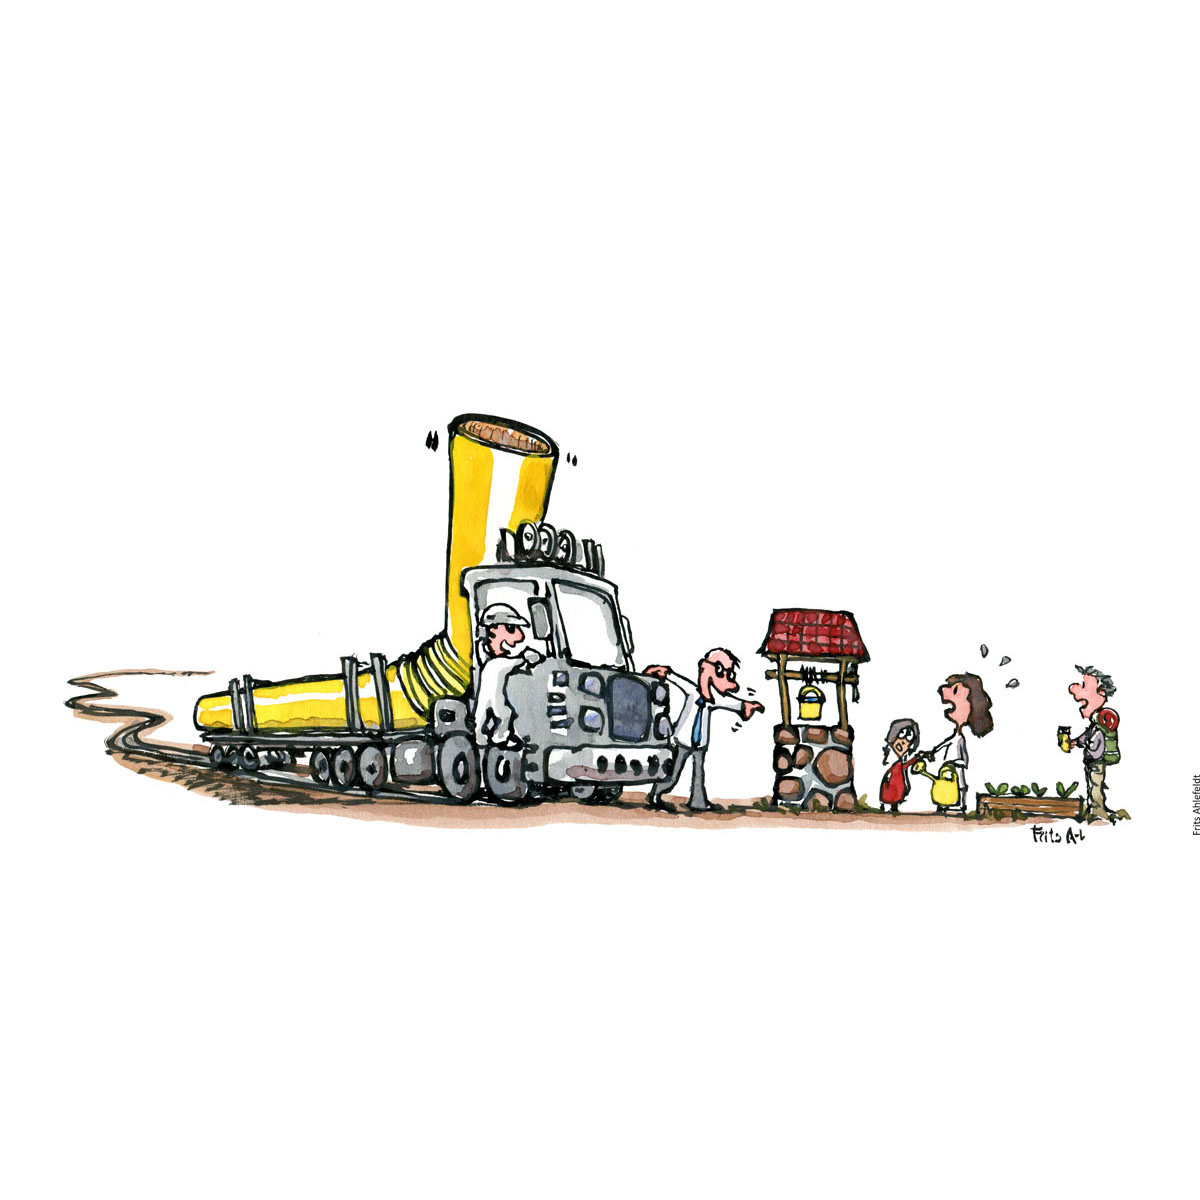 Drawing of a truck with a long pipe like straw. and a businessman pointing at well, where locals and hikers get water. Resource illustration by Frits Ahlefeldt